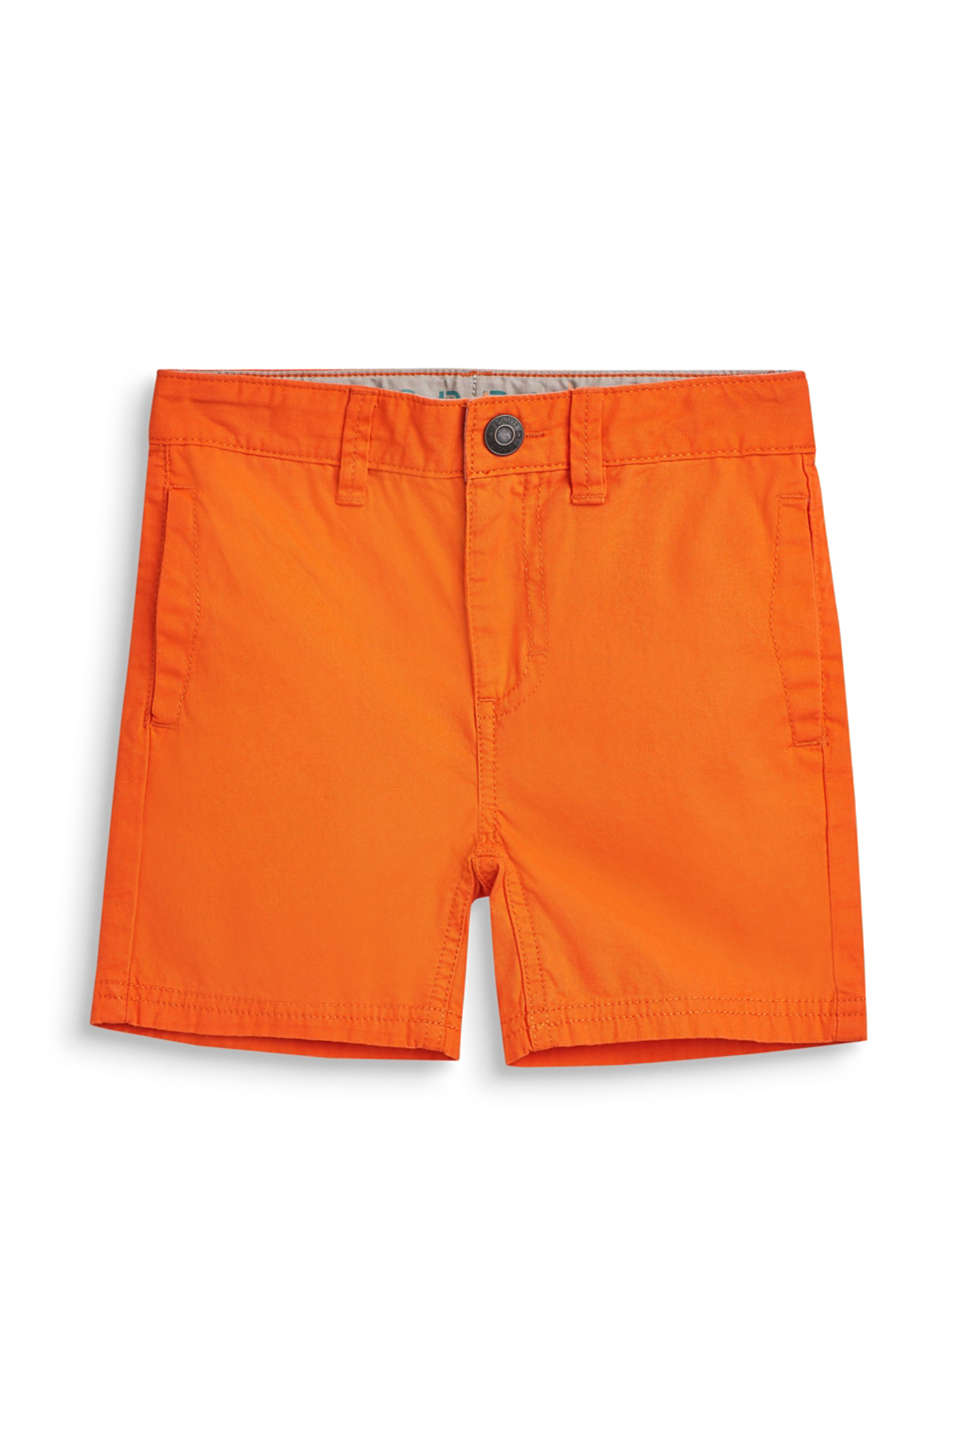 Shorts with adjustable waistband, 100% cotton, BRIGHT ORANGE, detail image number 3